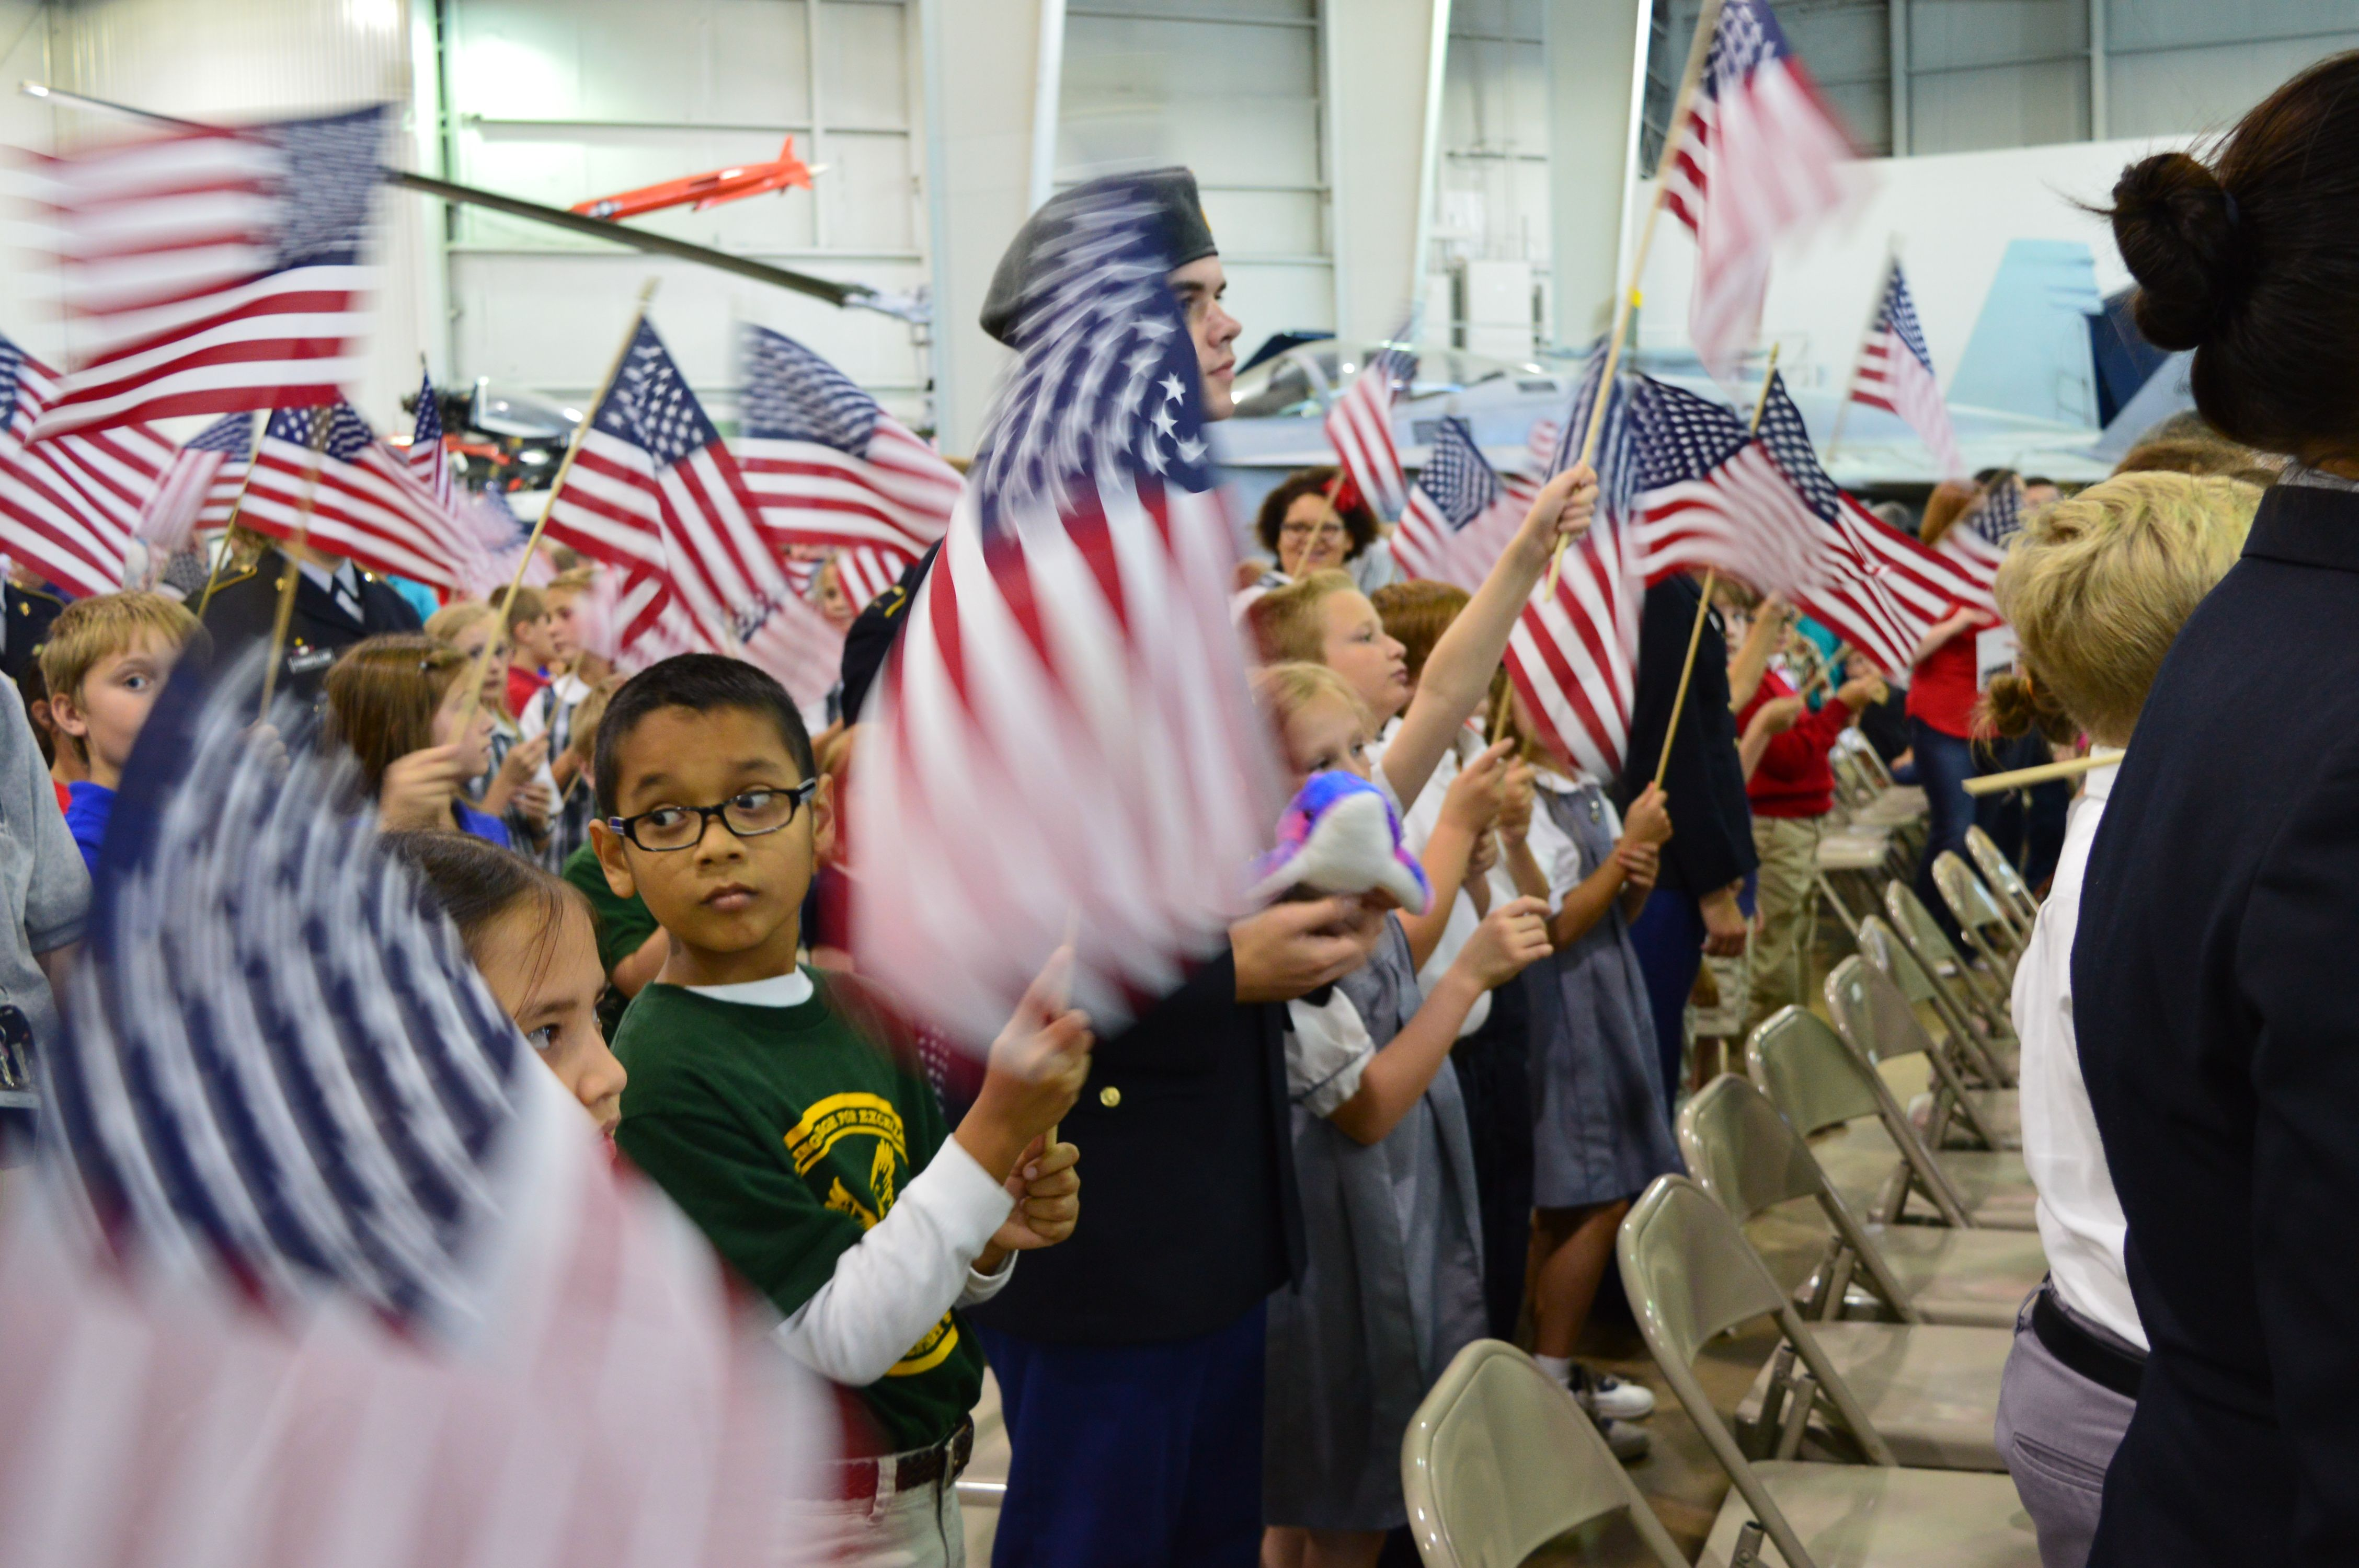 Local fourth grade students have the opportunity to join us for our annual Parade of Flags.